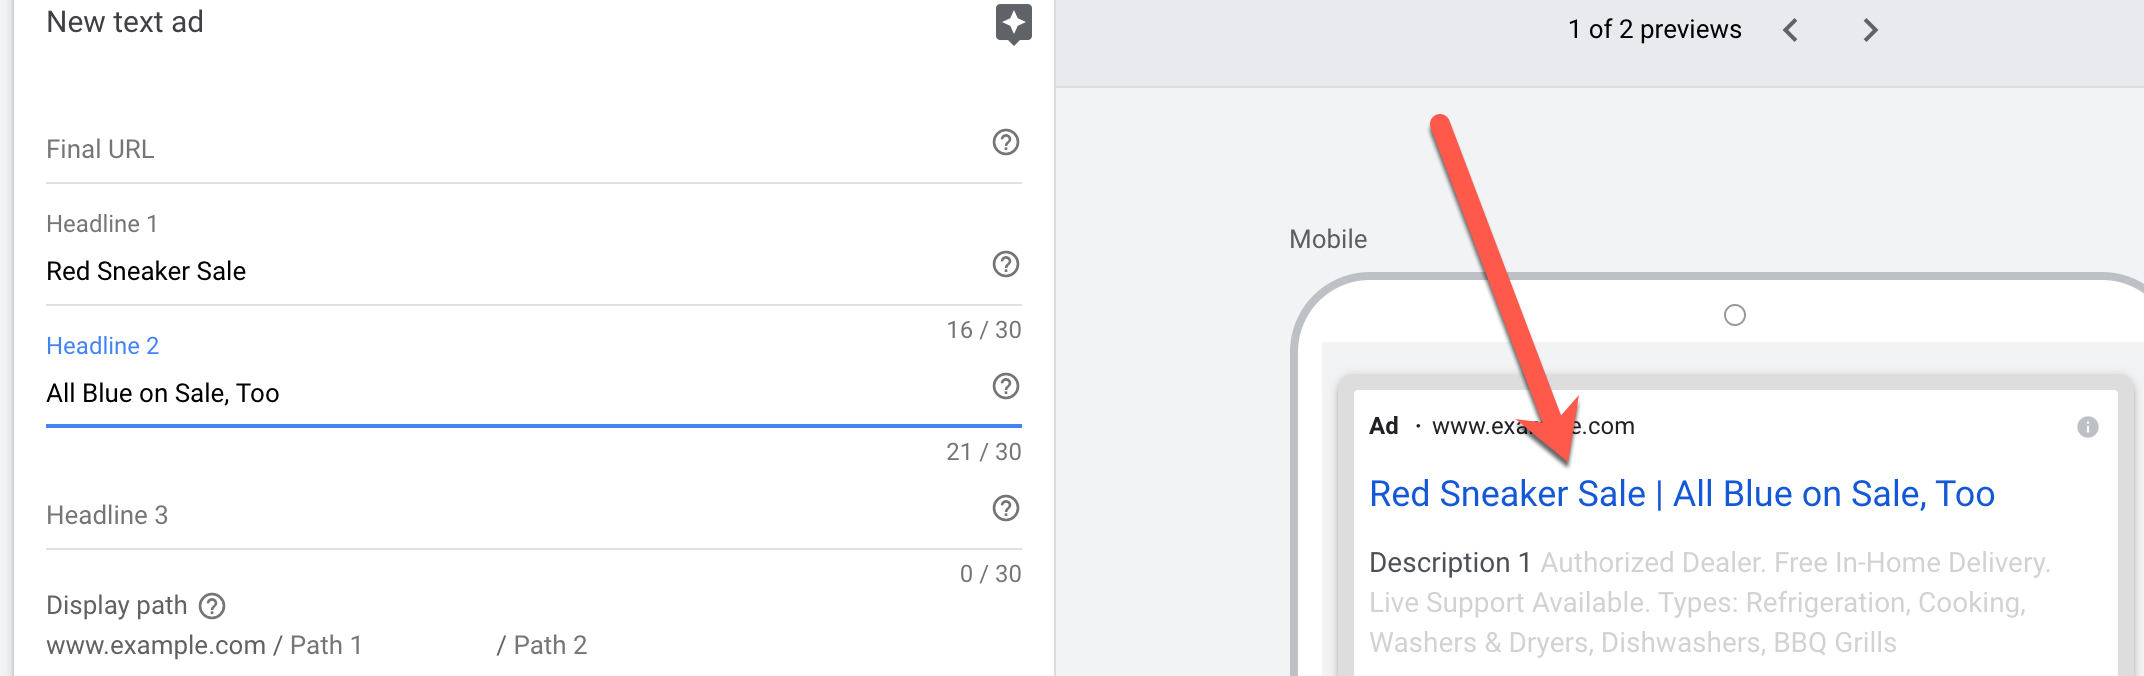 responsive-search-ads-now-the-default-in-google-ads